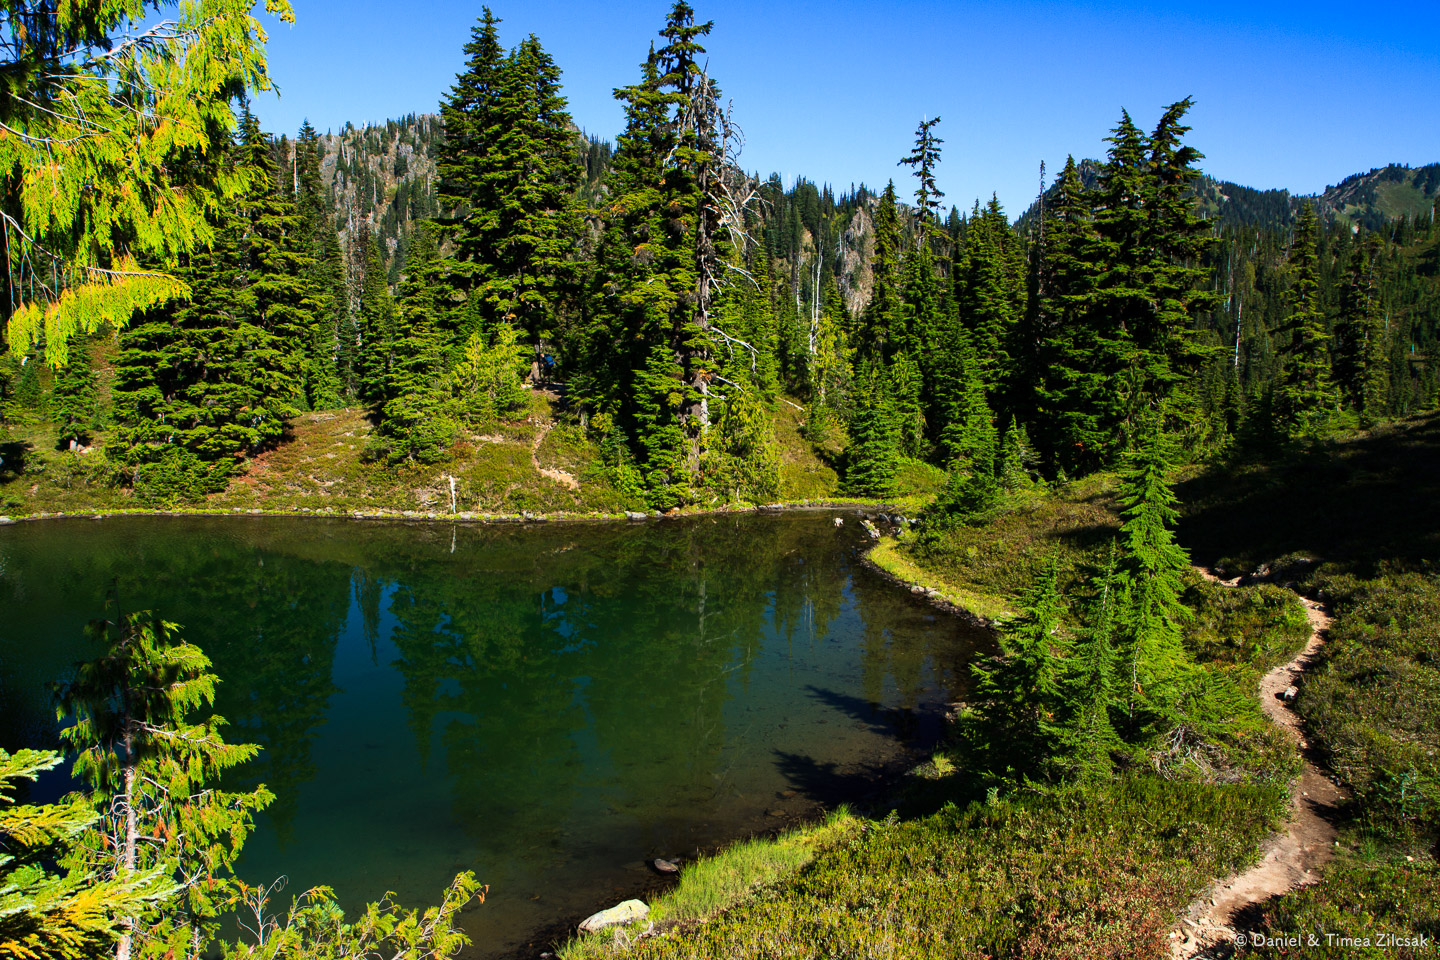 Our secluded campsite at Clear Lake (across the lake outlet), Seven Lakes Basin